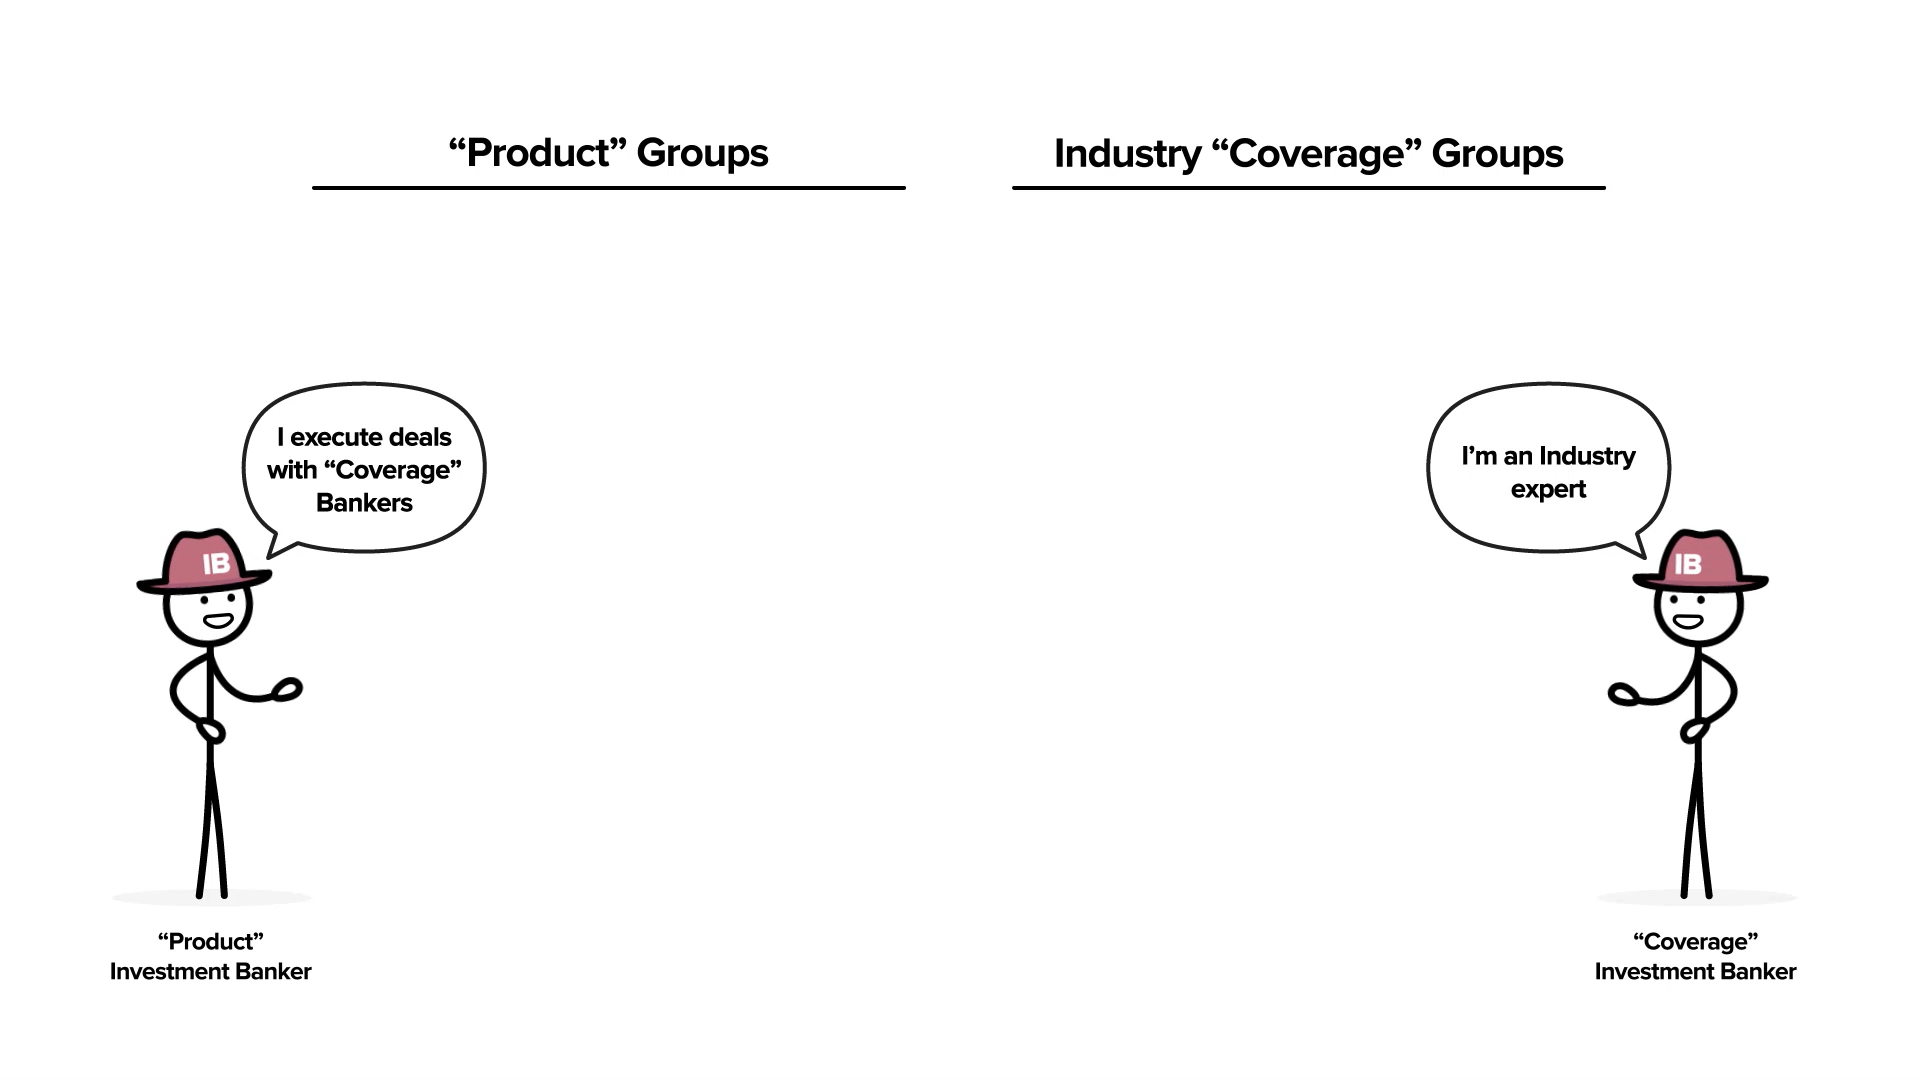 Industry Coverage Groups, Product Execution Groups